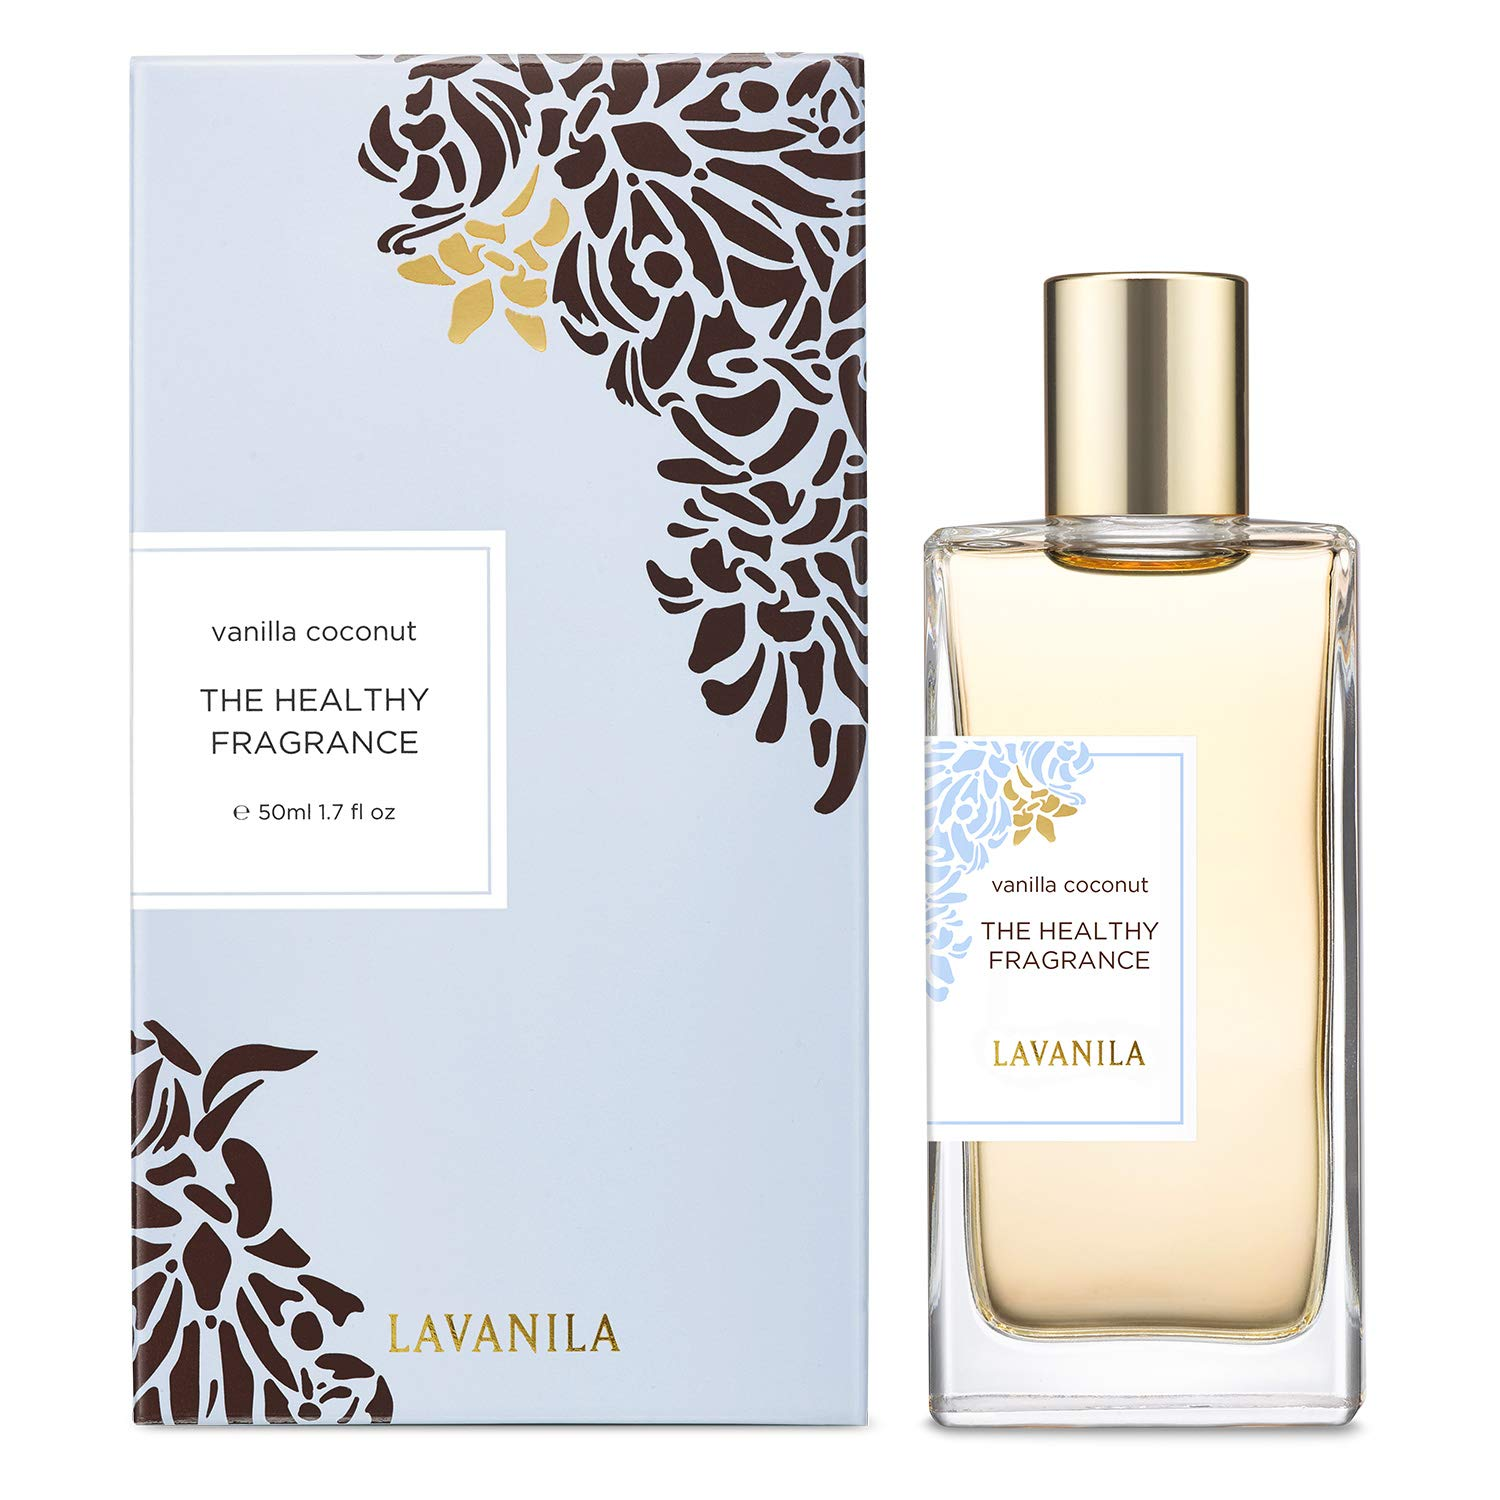 Lavanila - The Healthy Fragrance Clean and Natural supreme shopping 1.7 Van oz